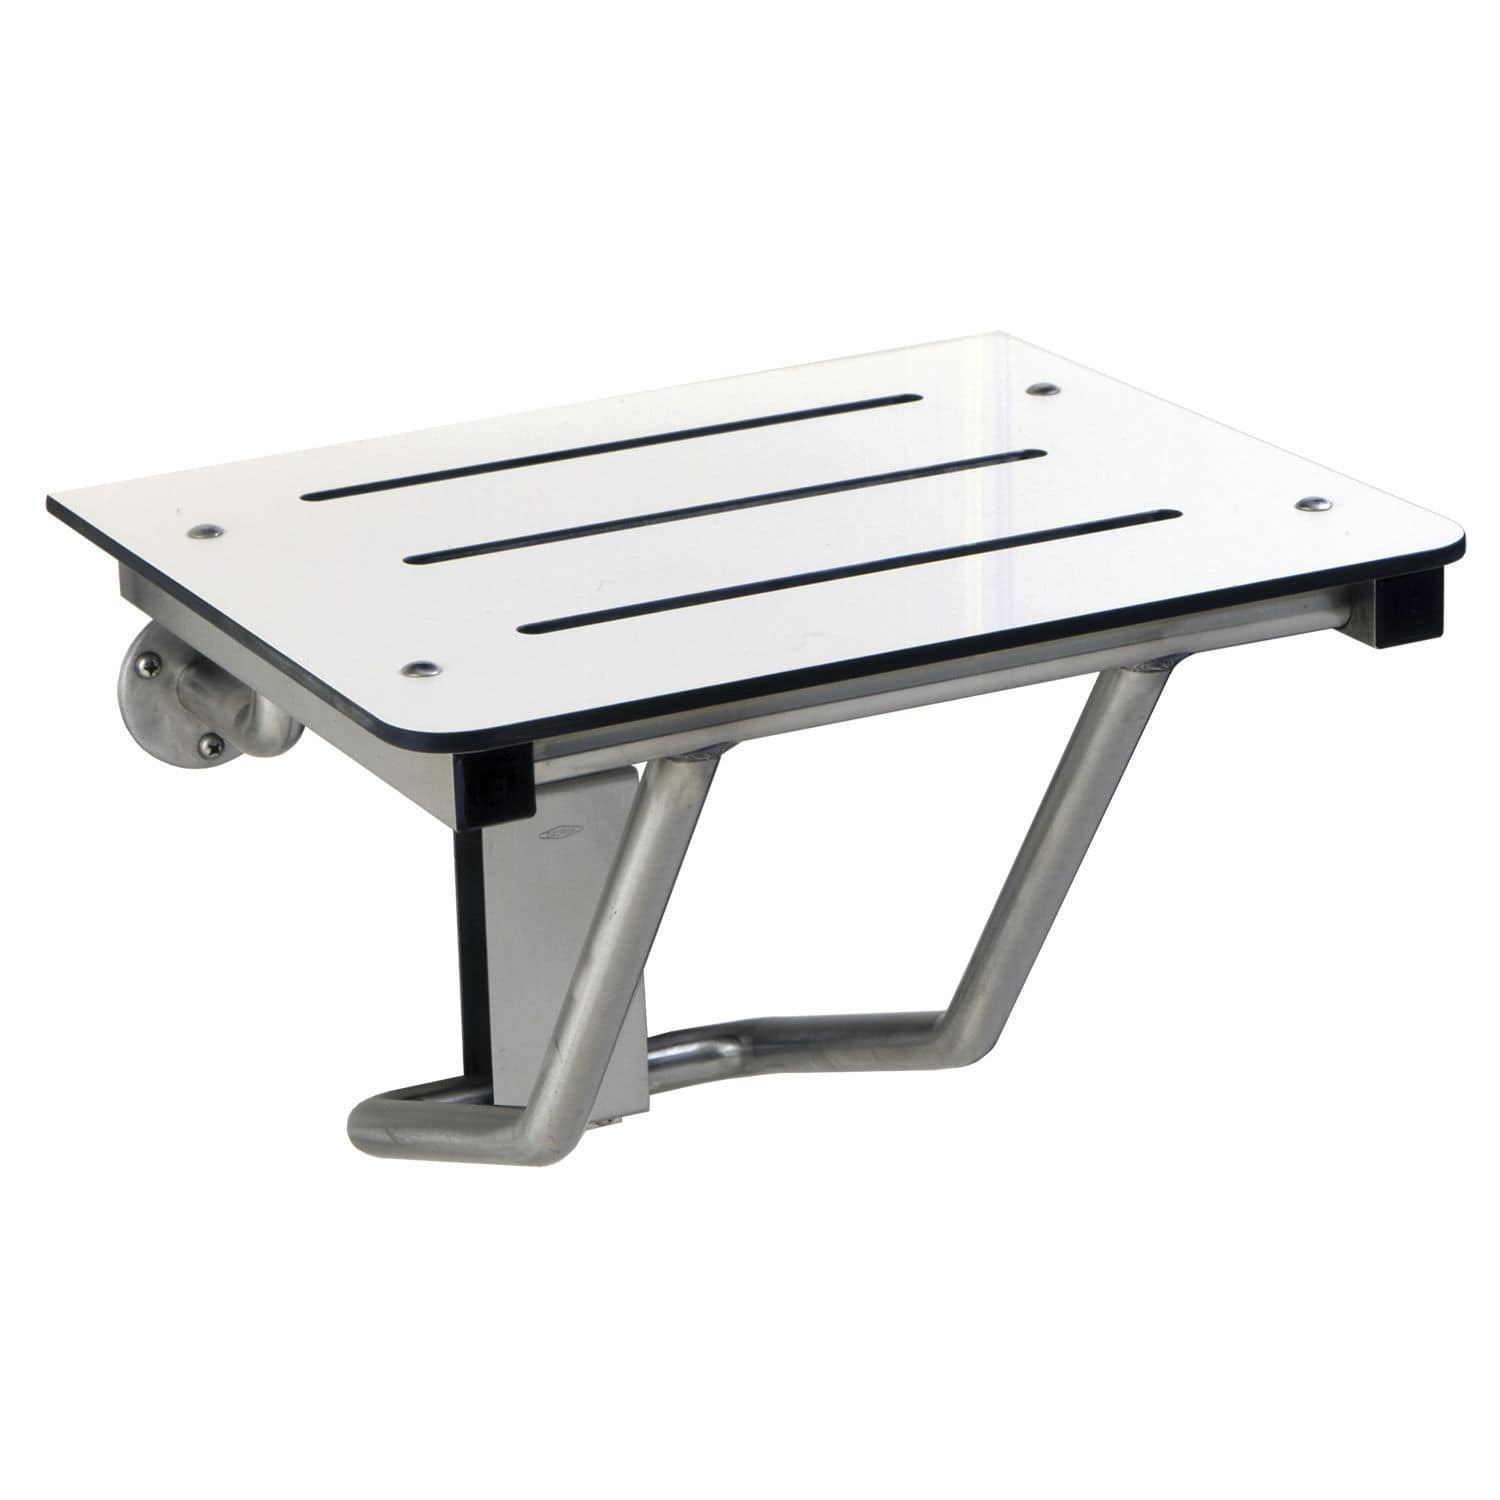 Folding shower seat stainless steel wall mounted B 5192 B